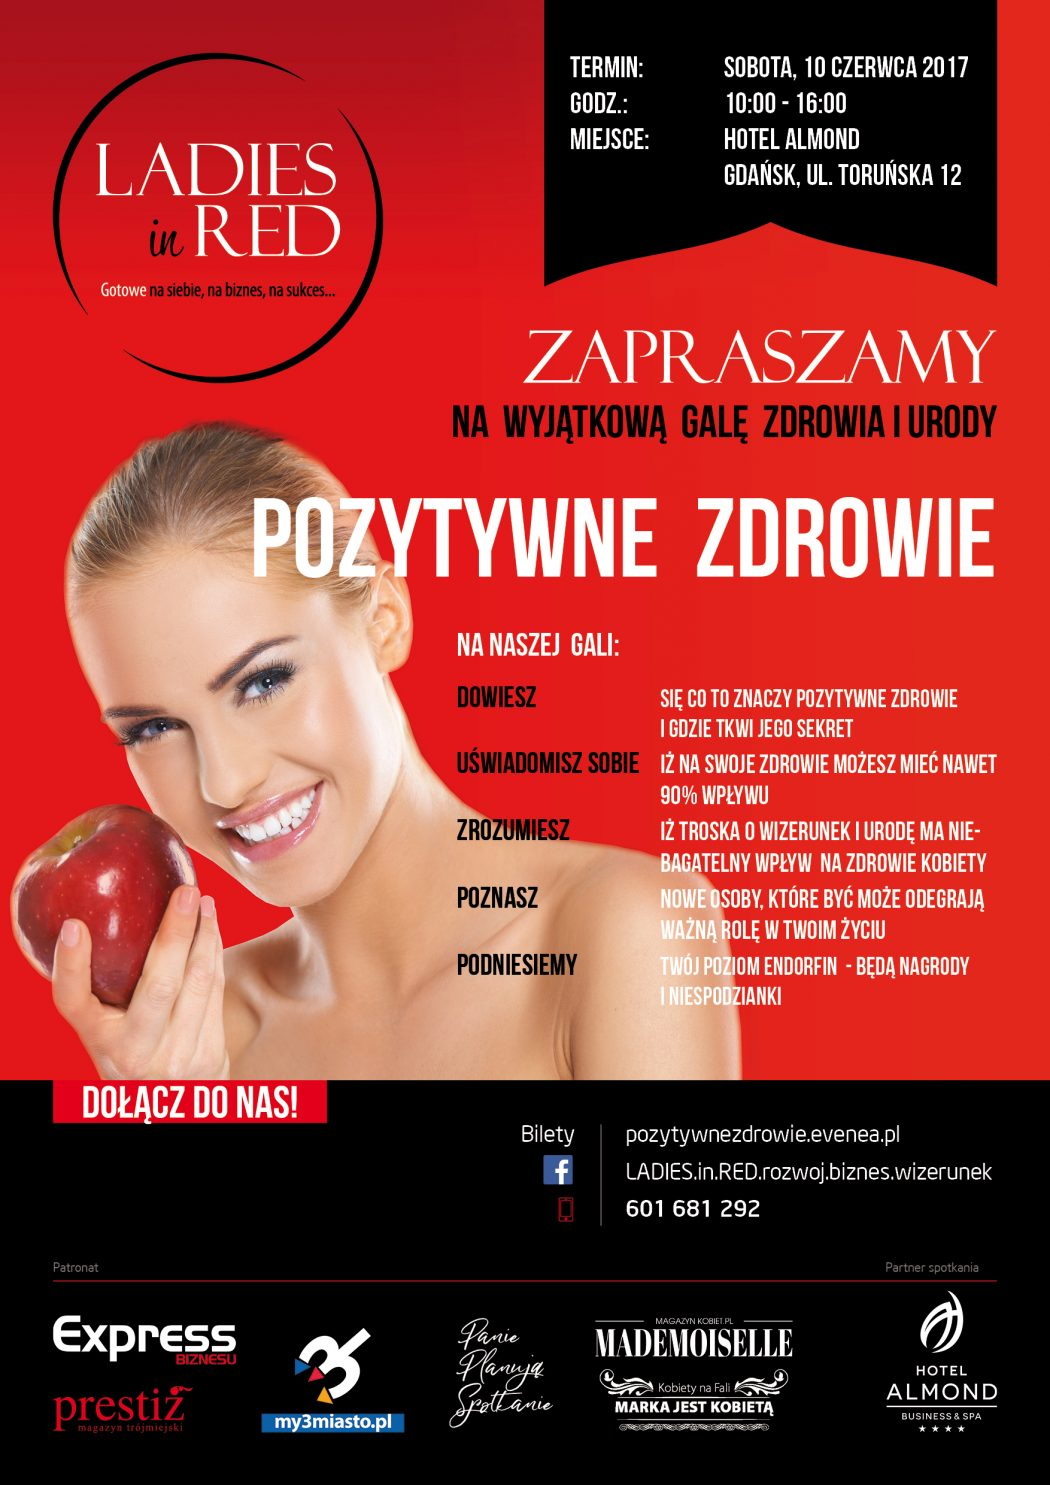 magazynkobiet.pl - L in Red Poster PozytywneZdrowie A3 1 1050x1485 - II Gala LADIES in RED - Pozytywne zdrowie